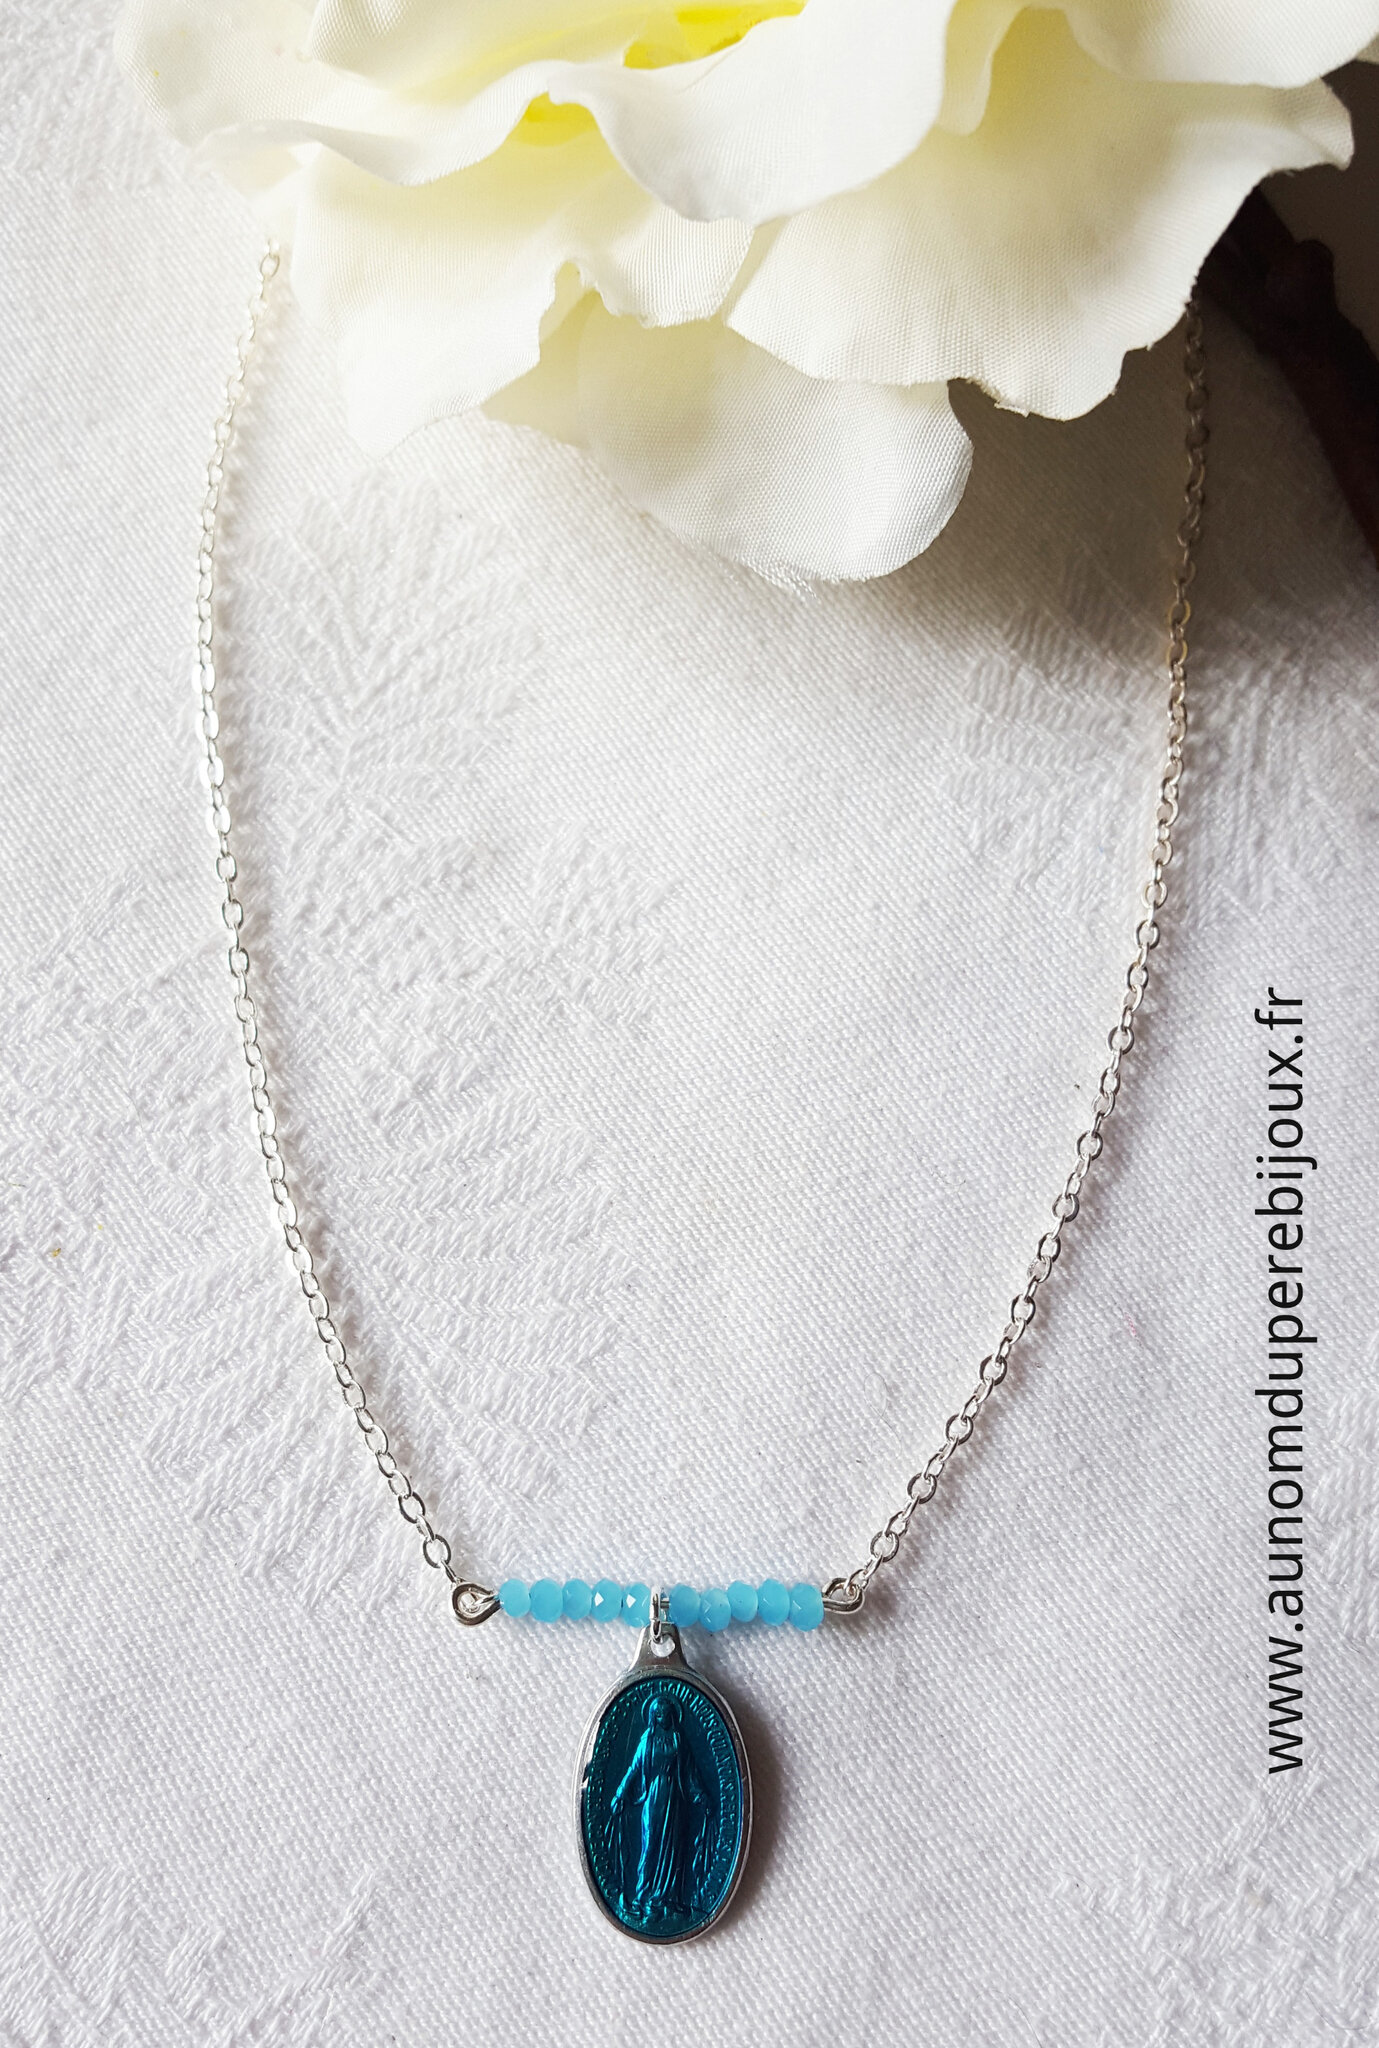 Collier Maria (turquoise) - 15 €